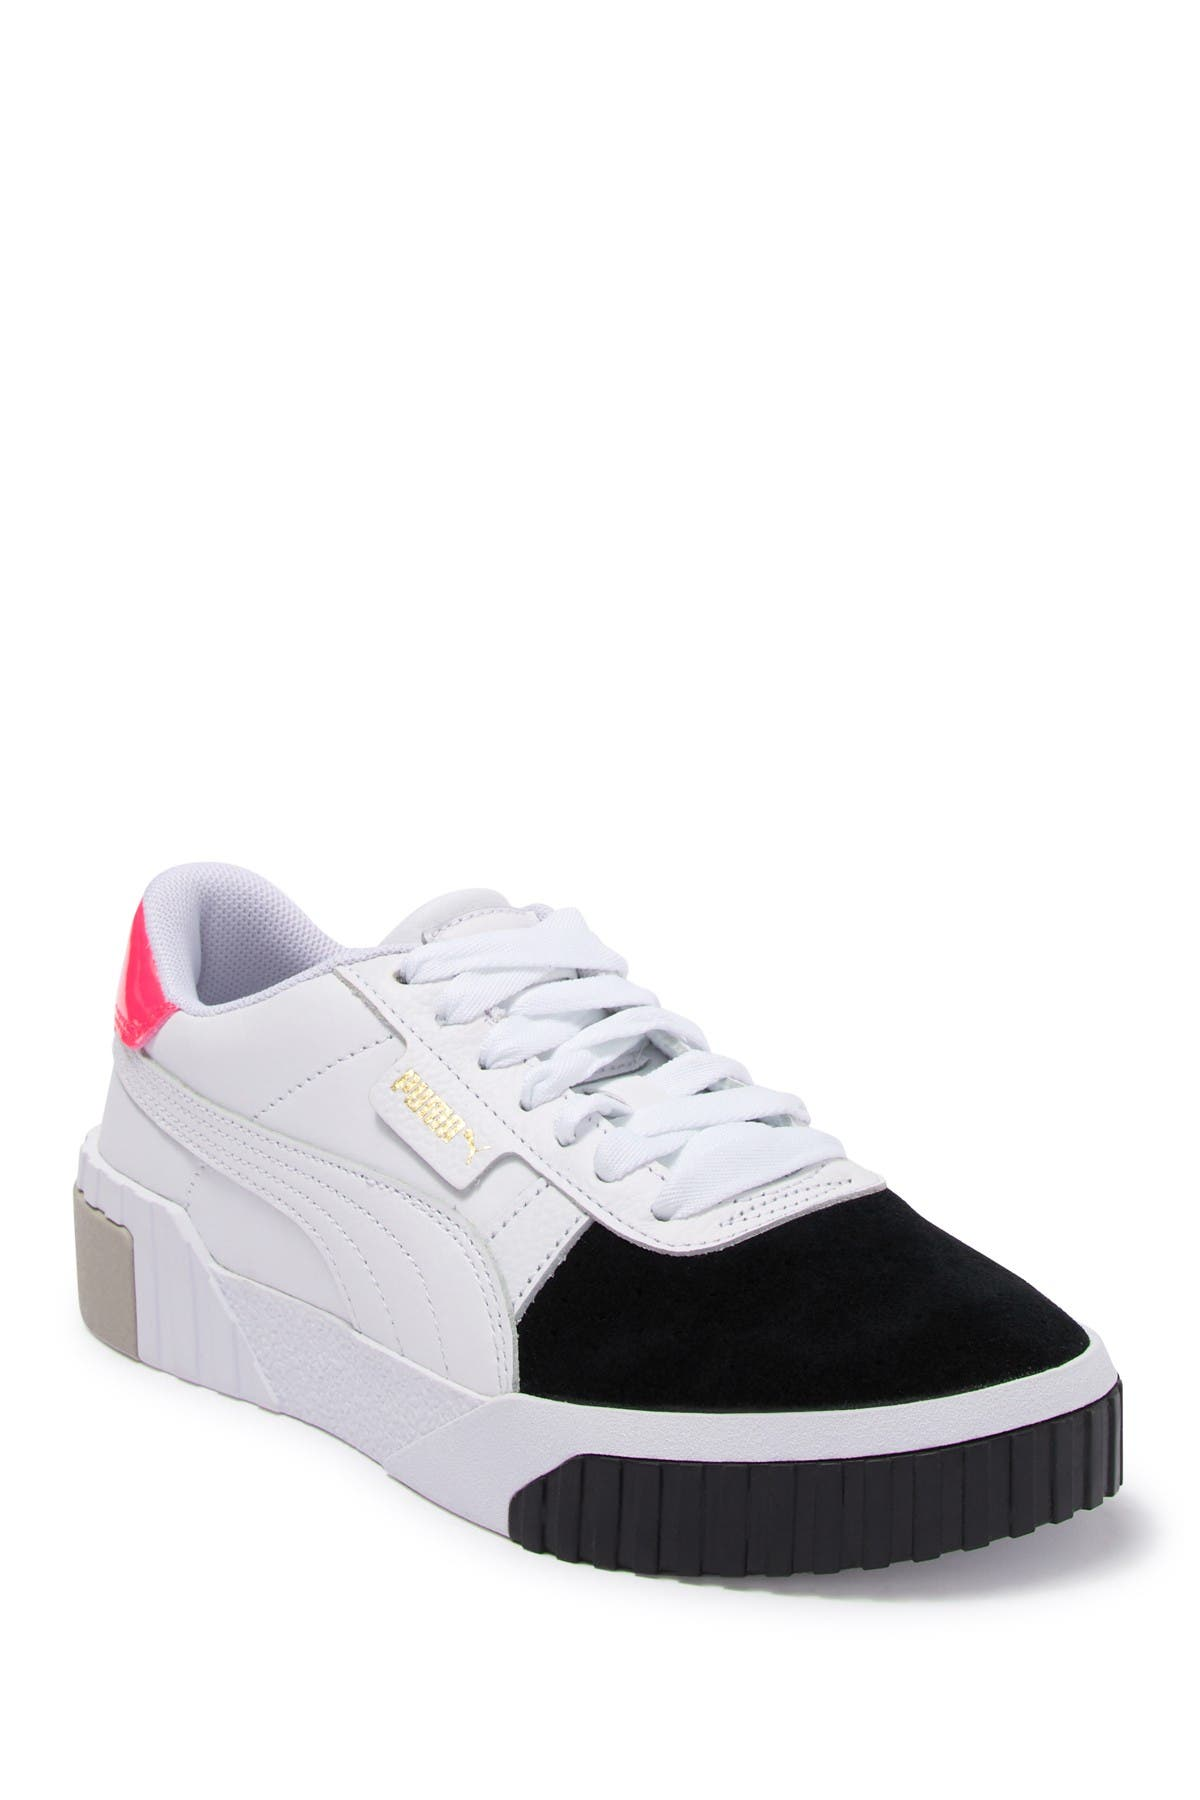 Nevada Ineficiente lineal  PUMA | Cali Remix Leather Sneaker | Nordstrom Rack